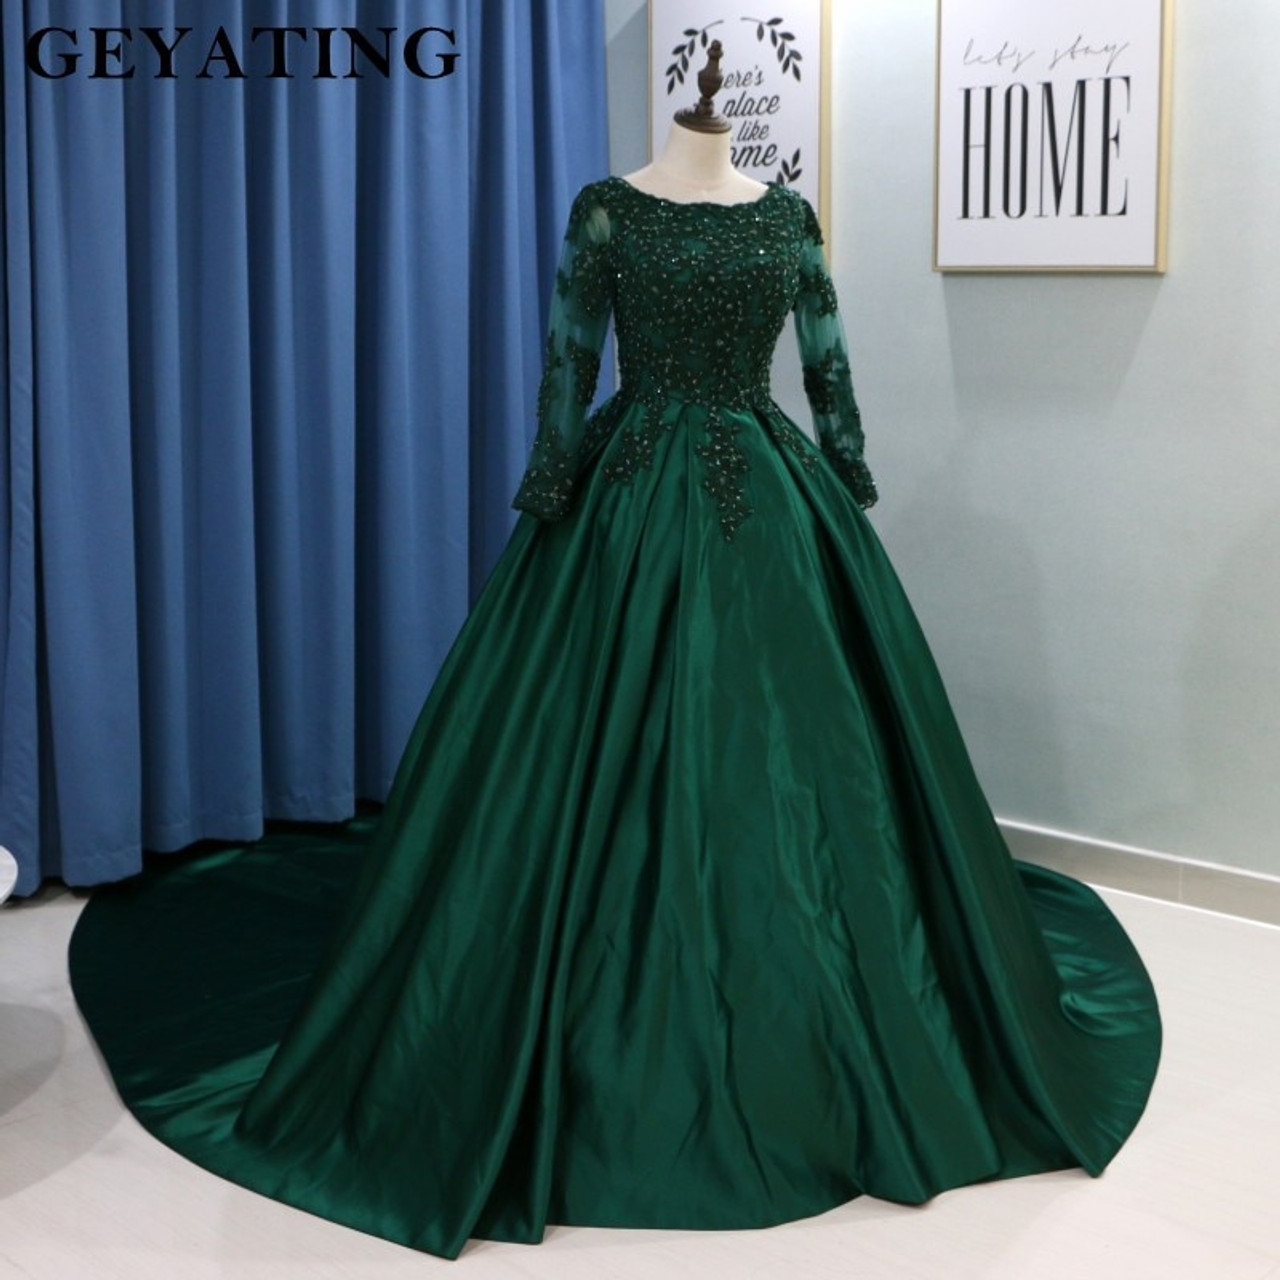 abef3fd2a0d3 ... Emerald Green Lace Long Sleeves Muslim Wedding Dress 2018 Ball Gown  Princess Bride Dresses Islamic Satin ...